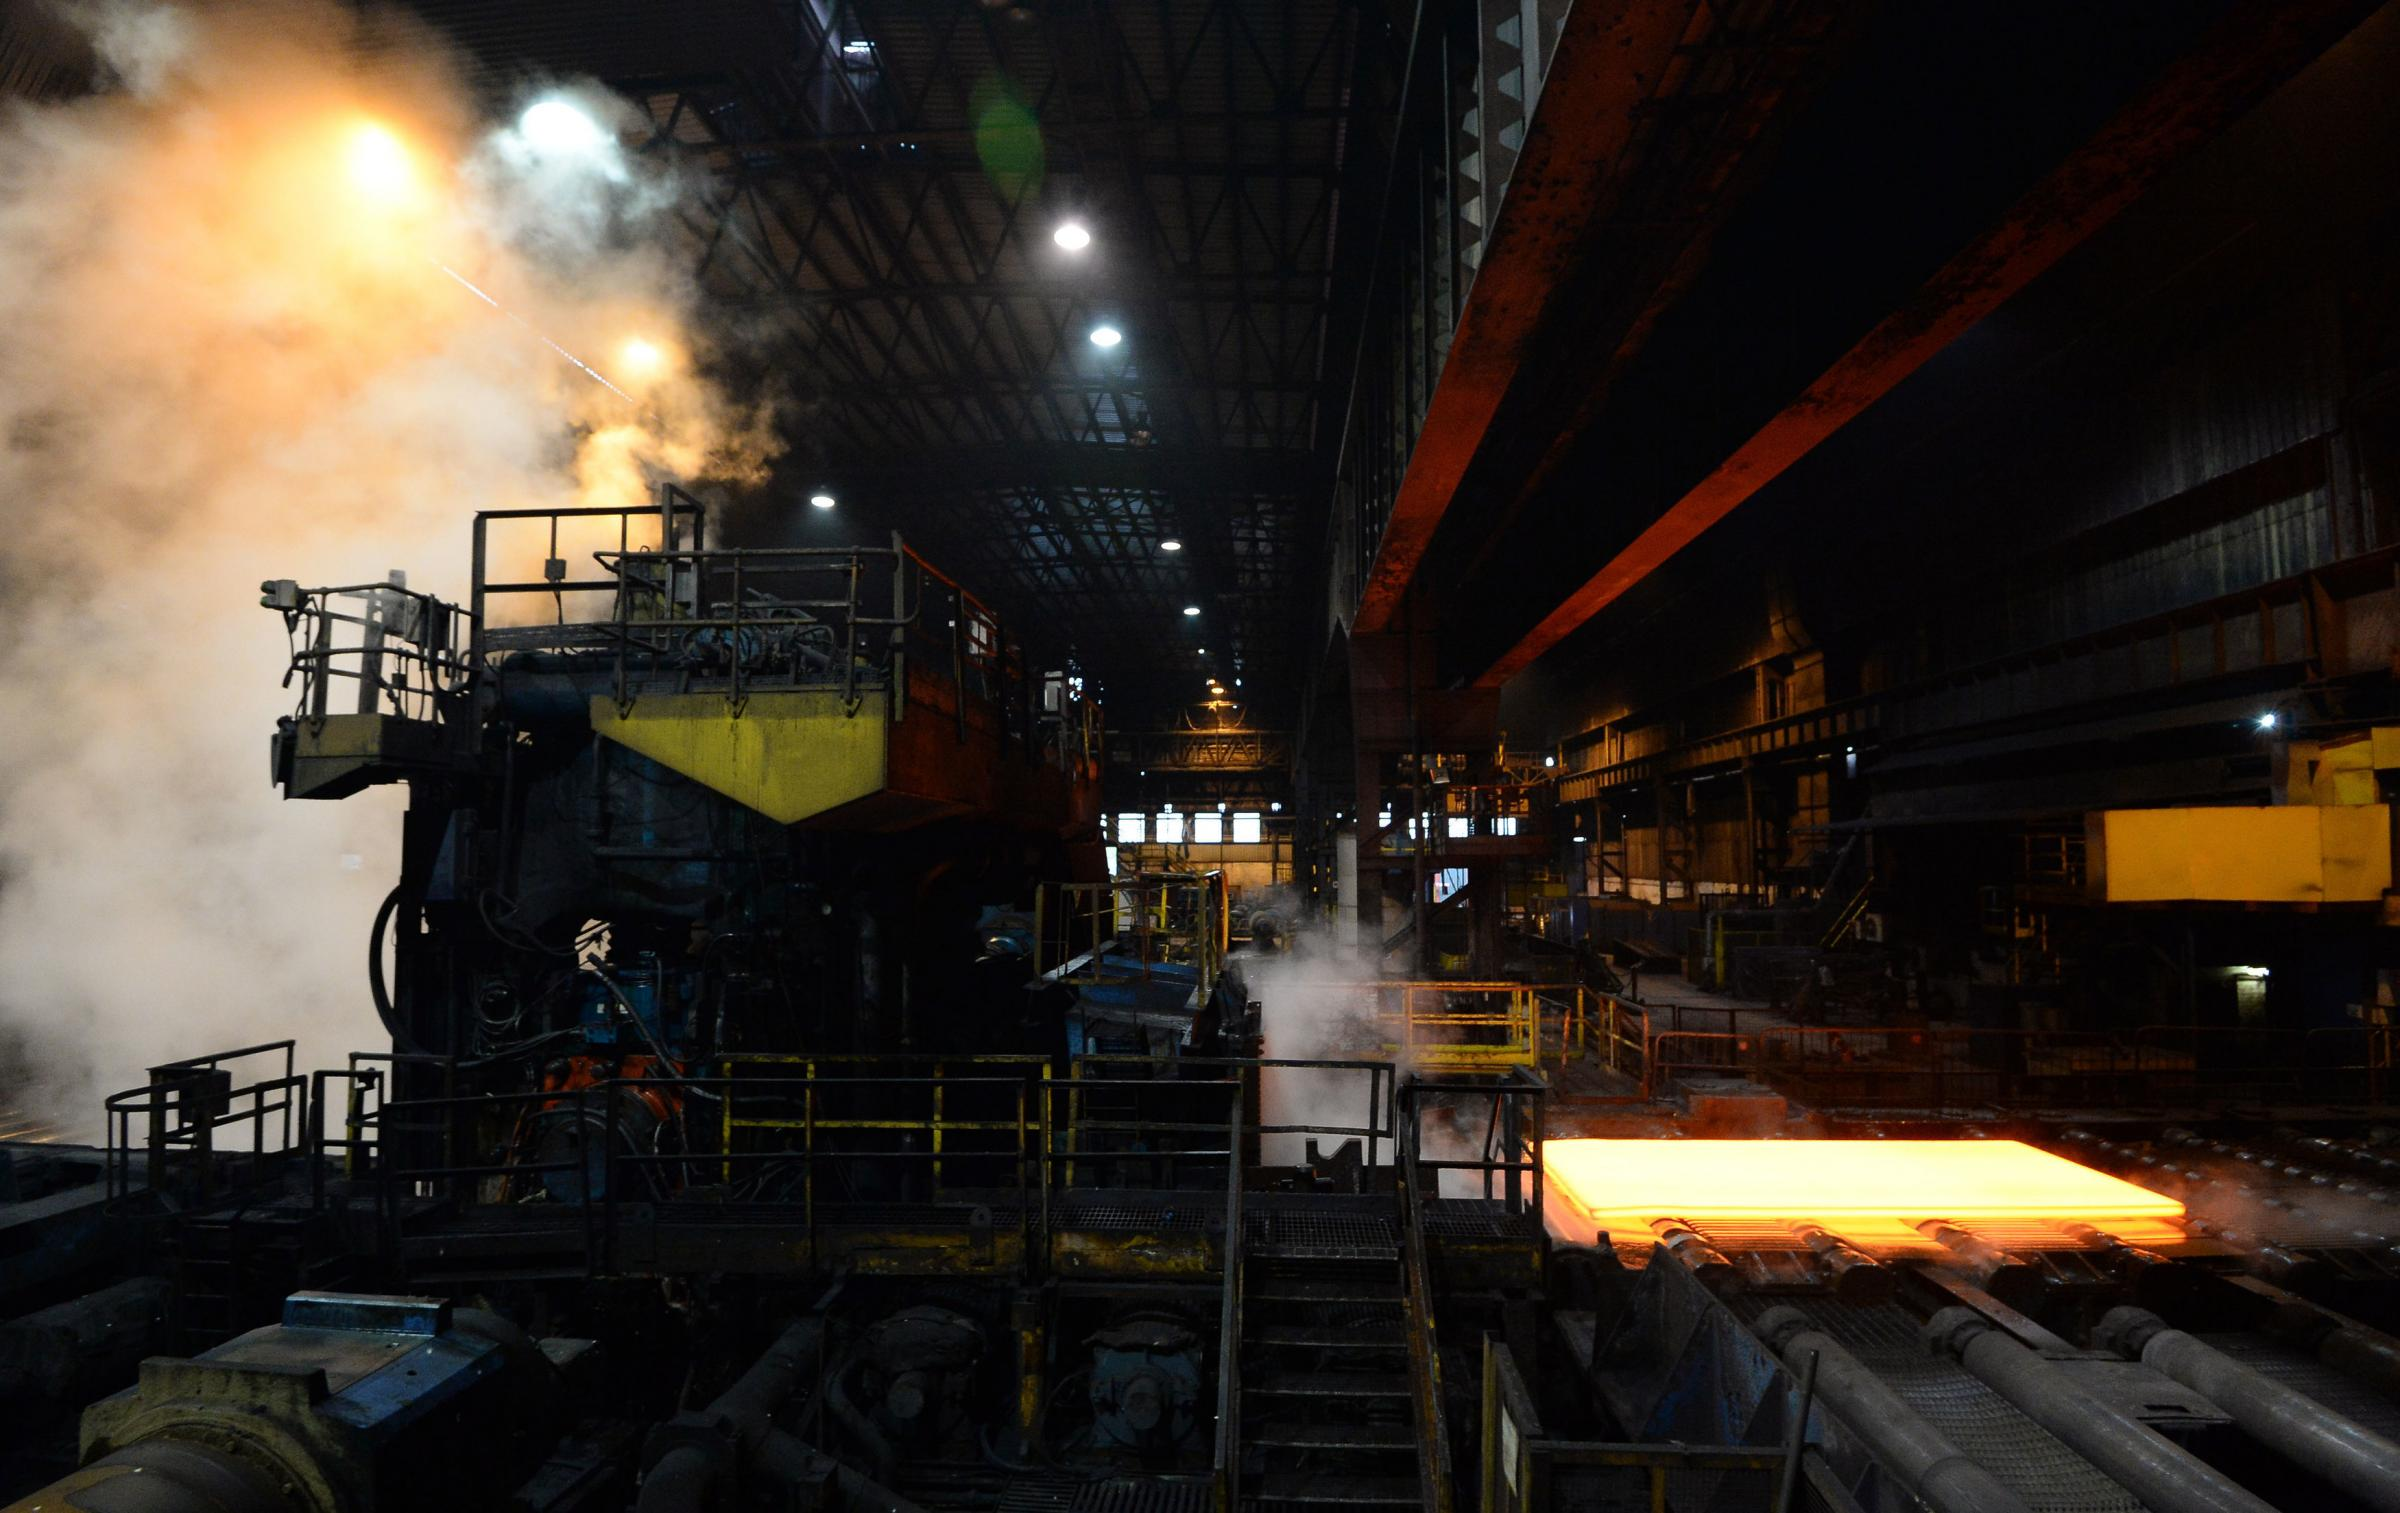 More turmoil for the steel industry, with thousands of jobs at risk